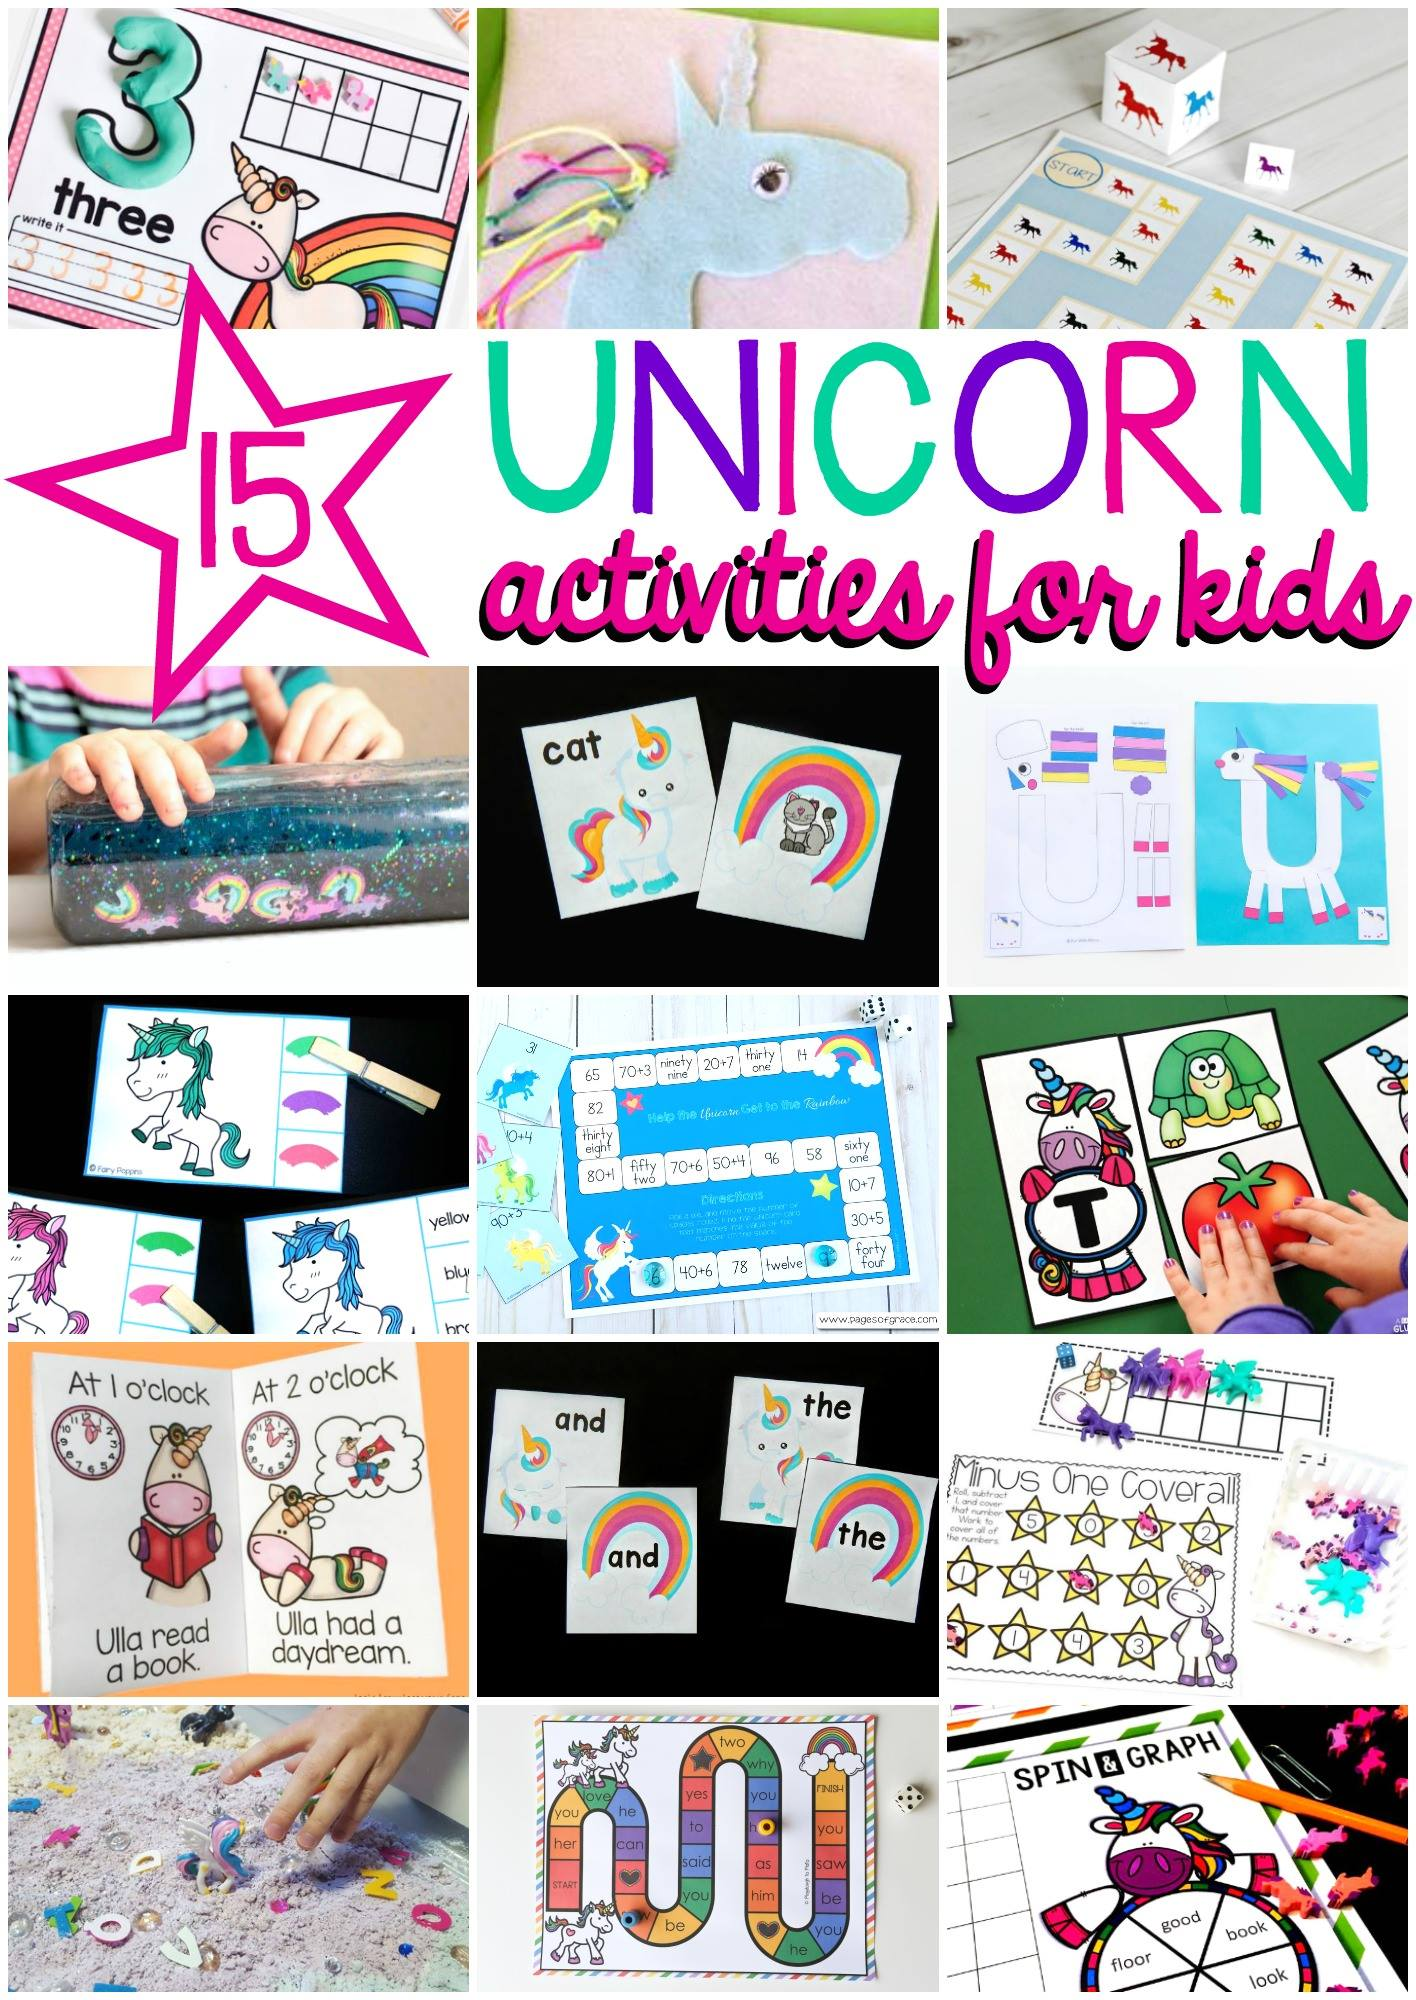 15 awesome unicorn activities for kids!